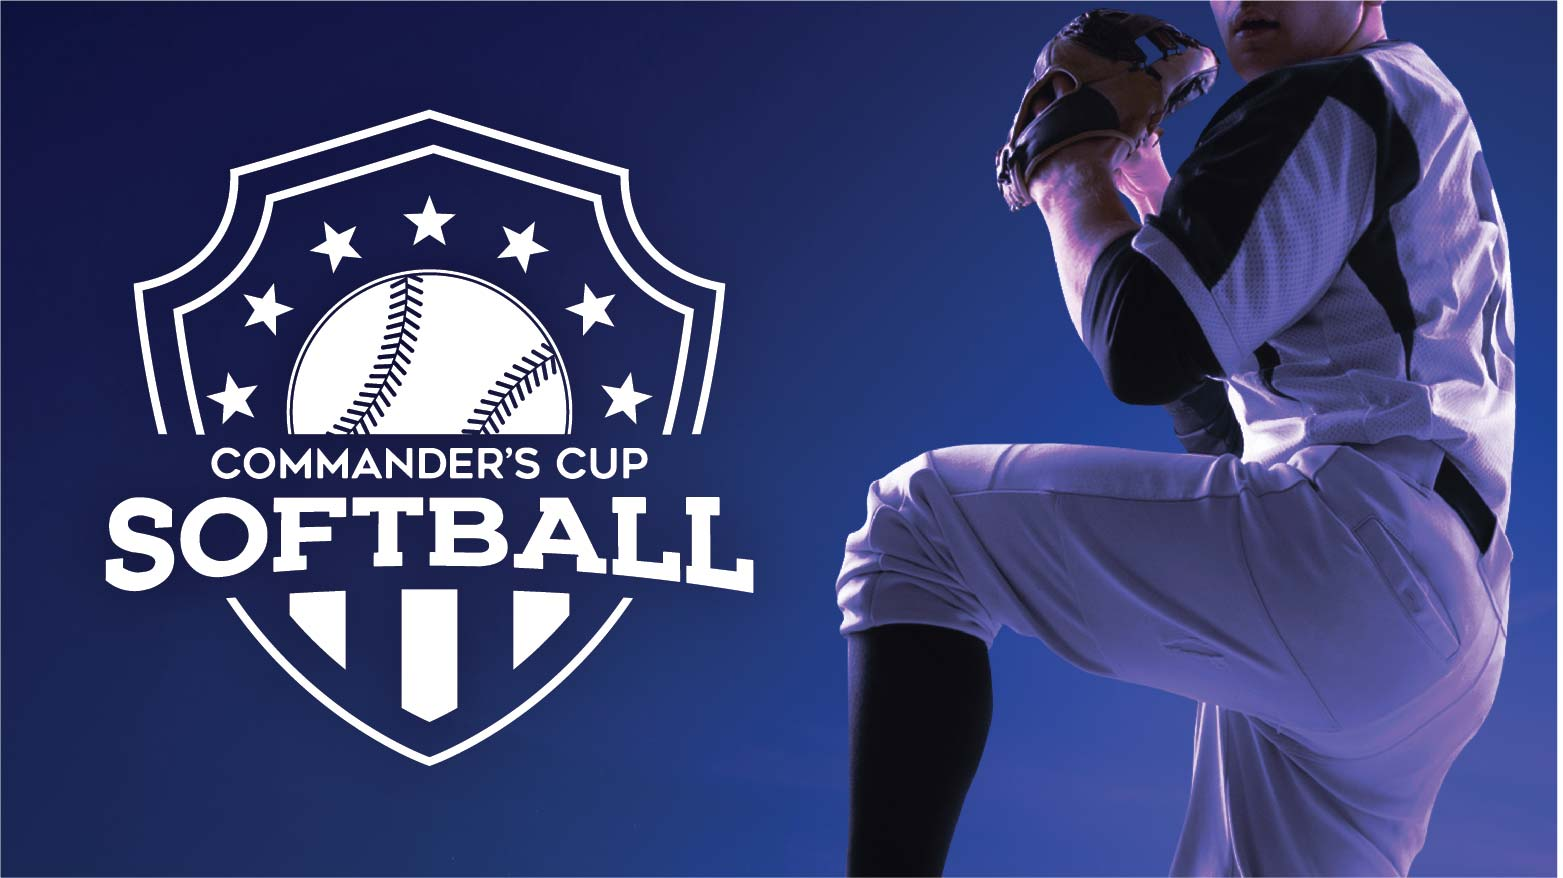 Commander's Cup Softball Registration